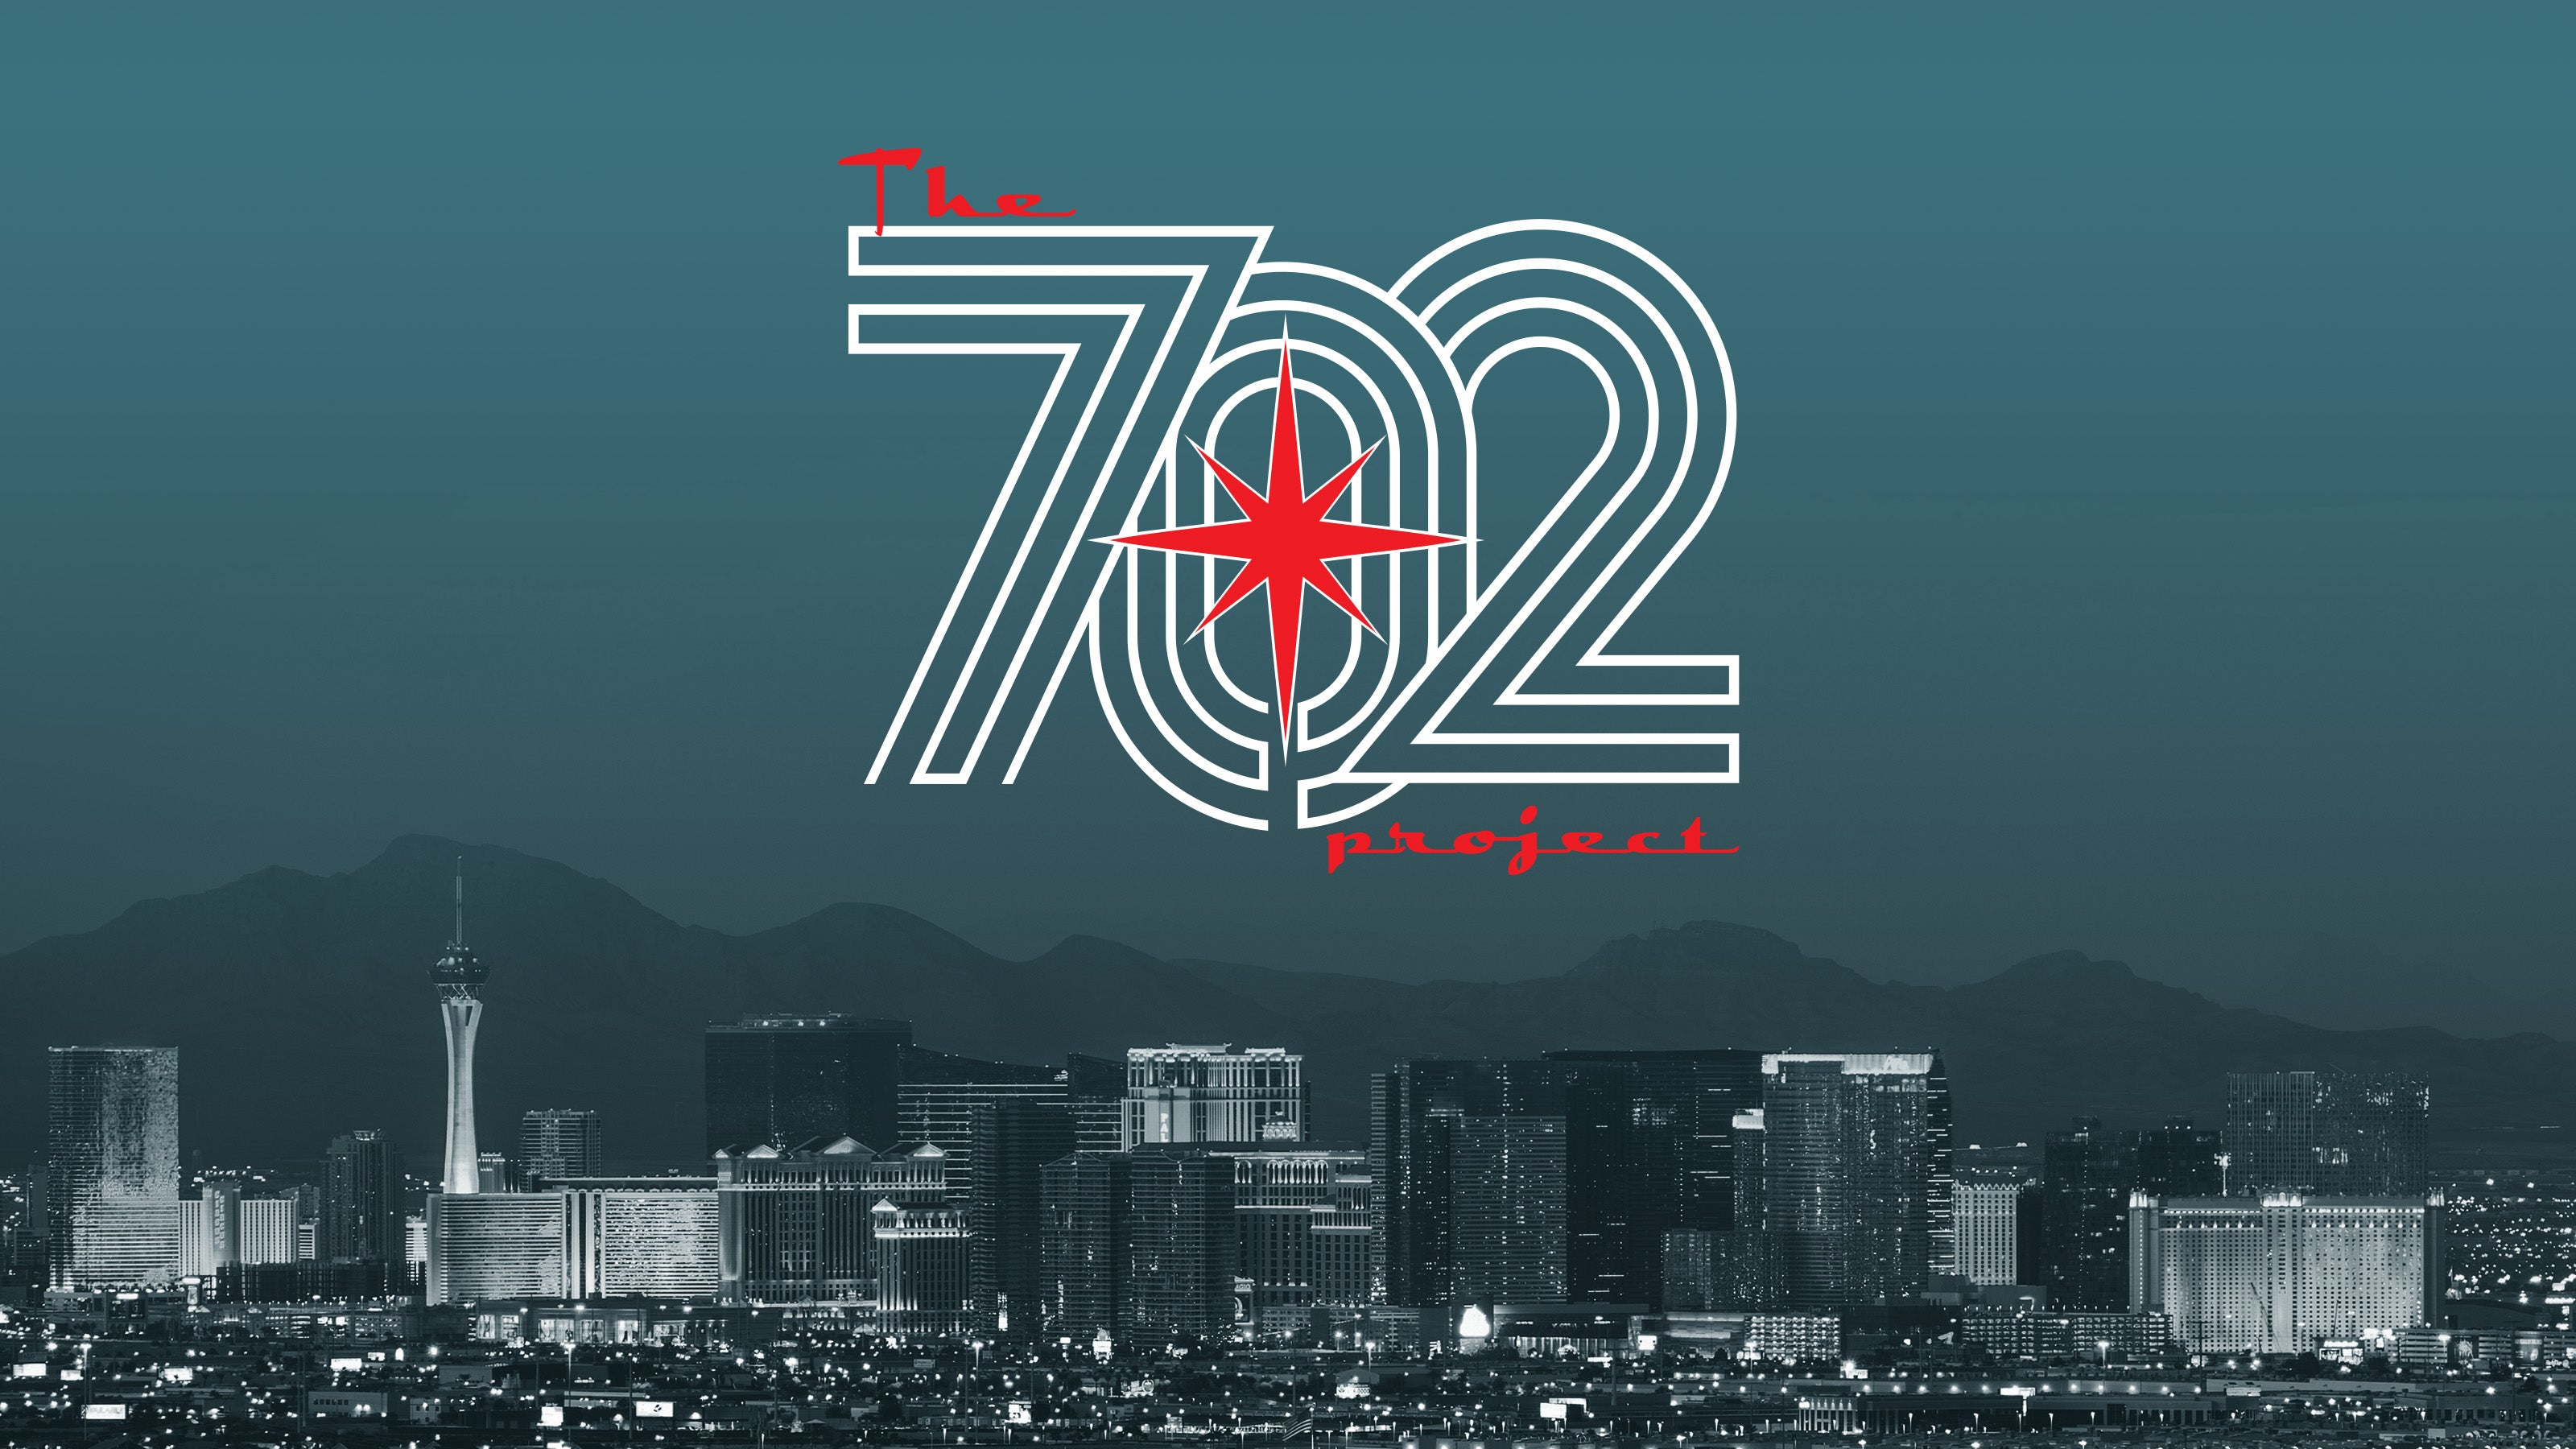 The 702 Project- Las Vegas based, philanthropic apparel company